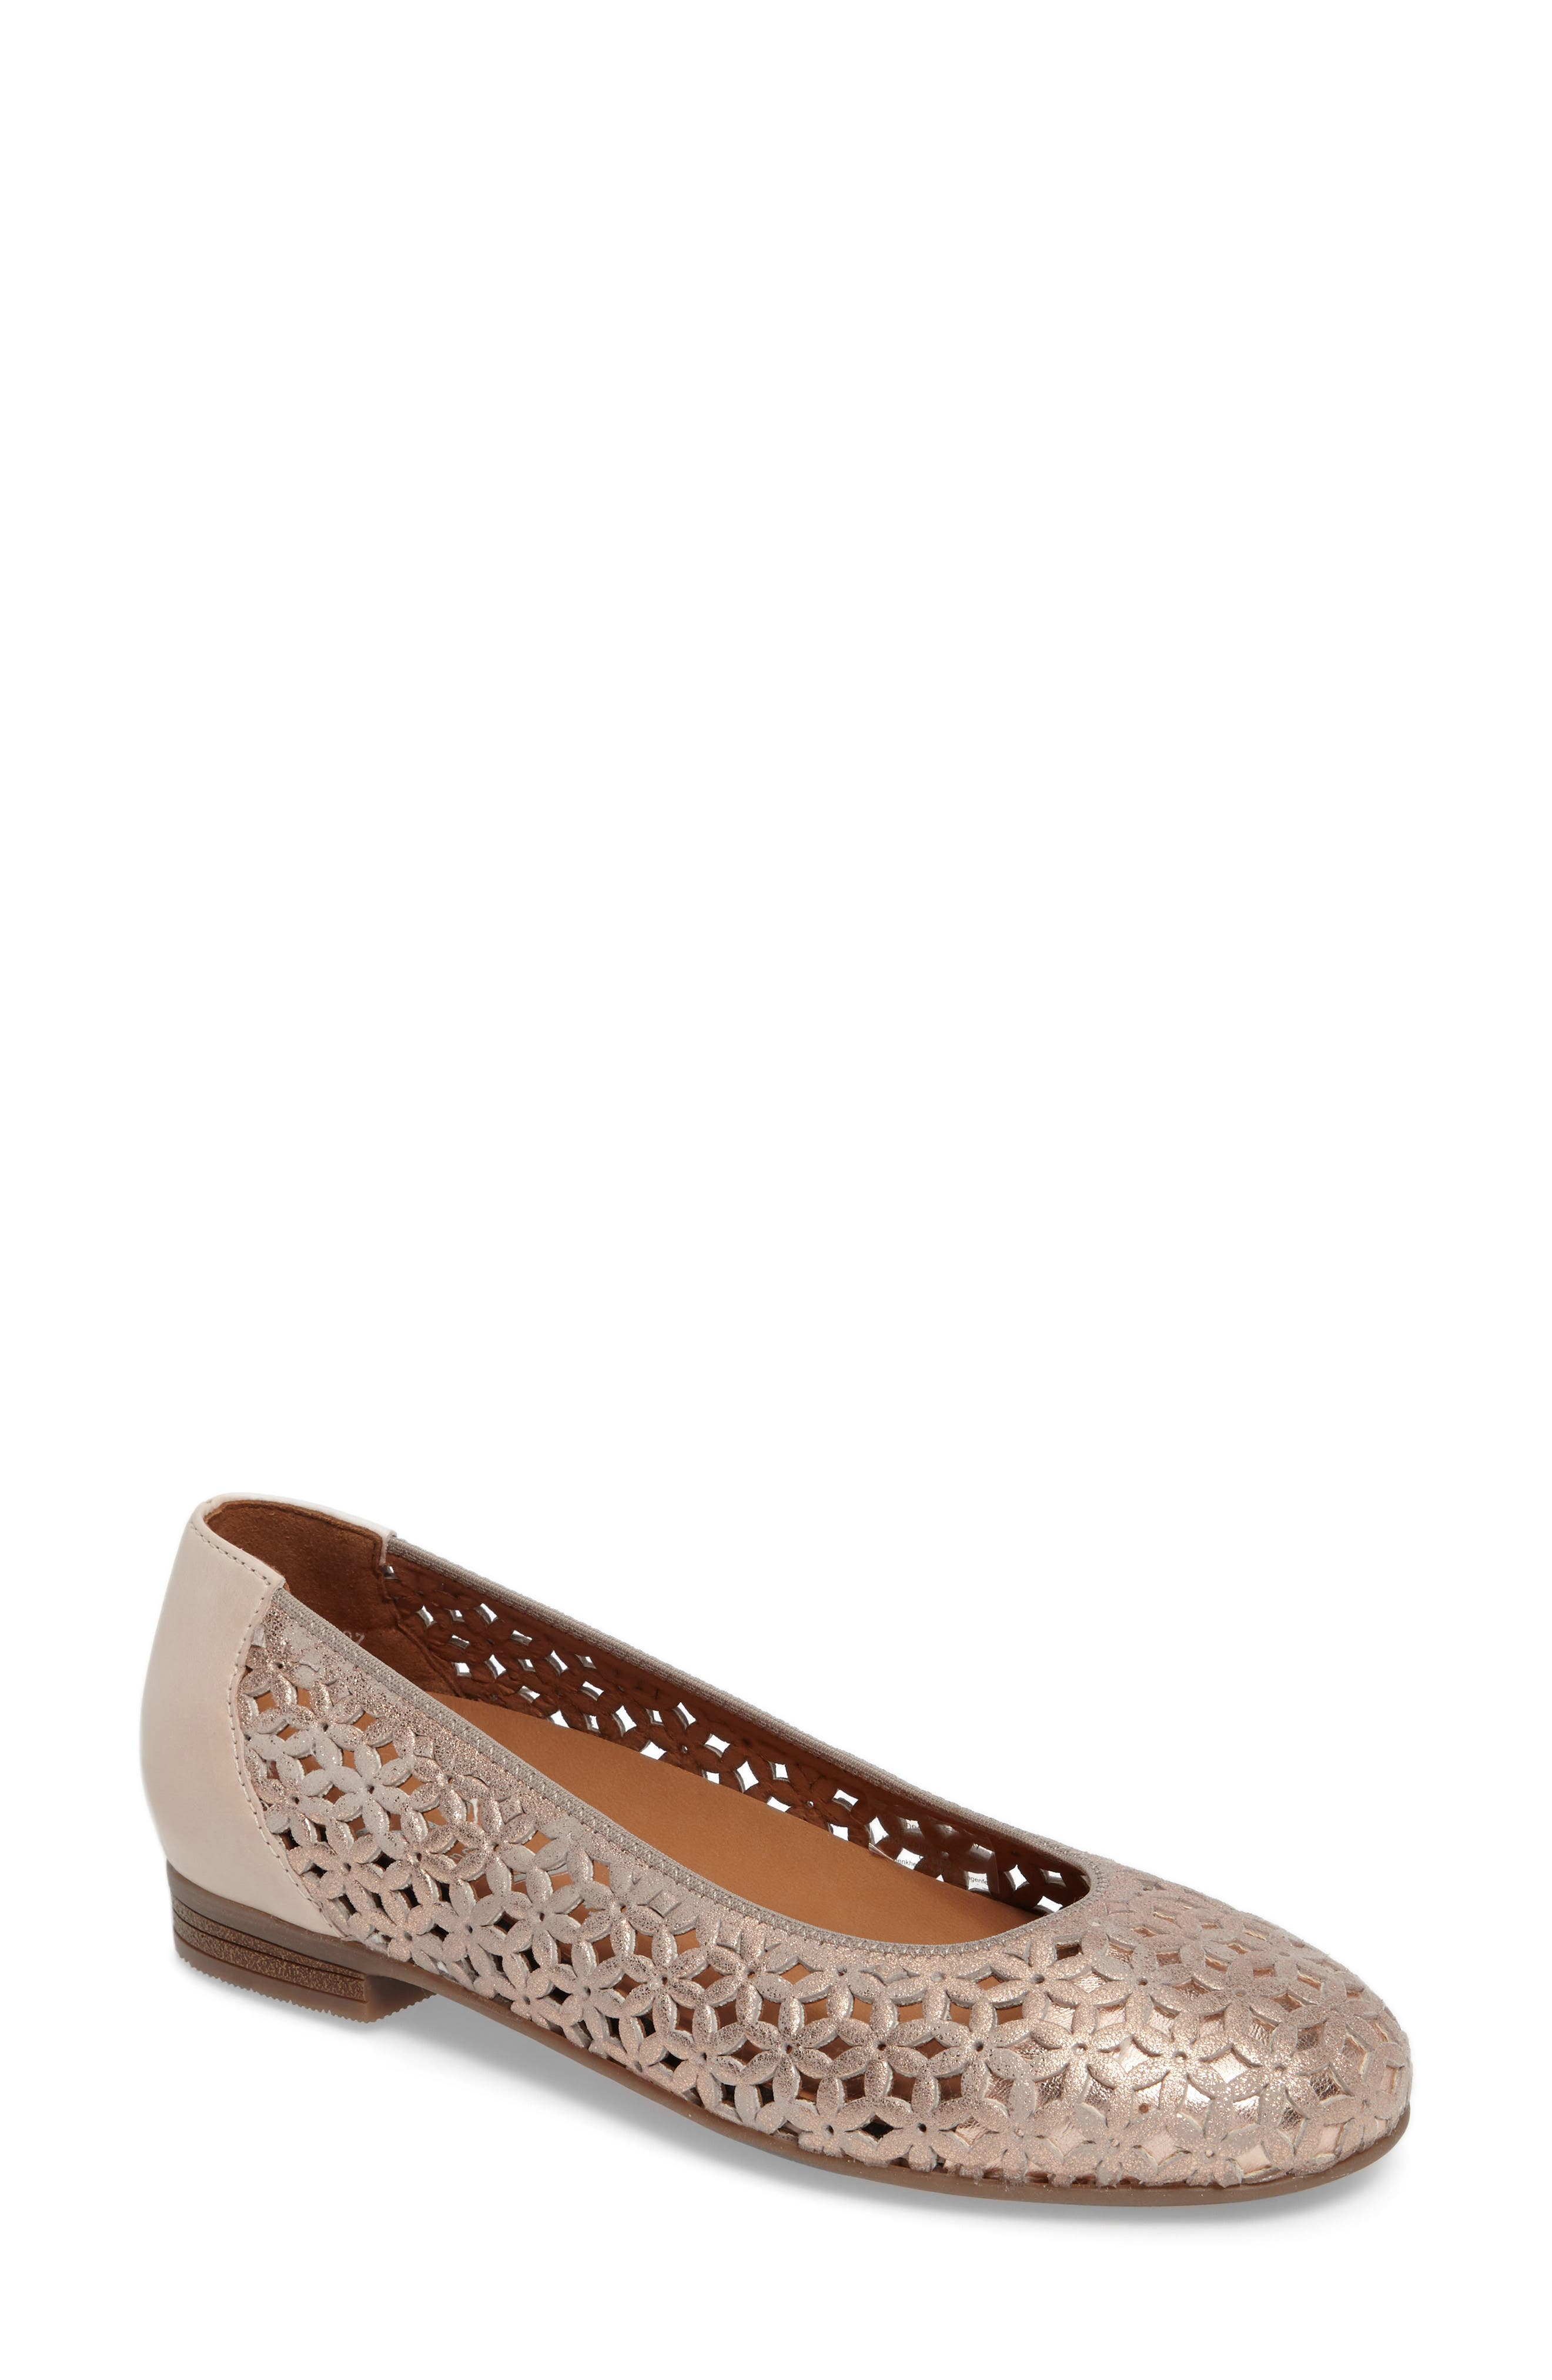 Alternate Image 1 Selected - ara Stephanie Perforated Ballet Flat (Women)